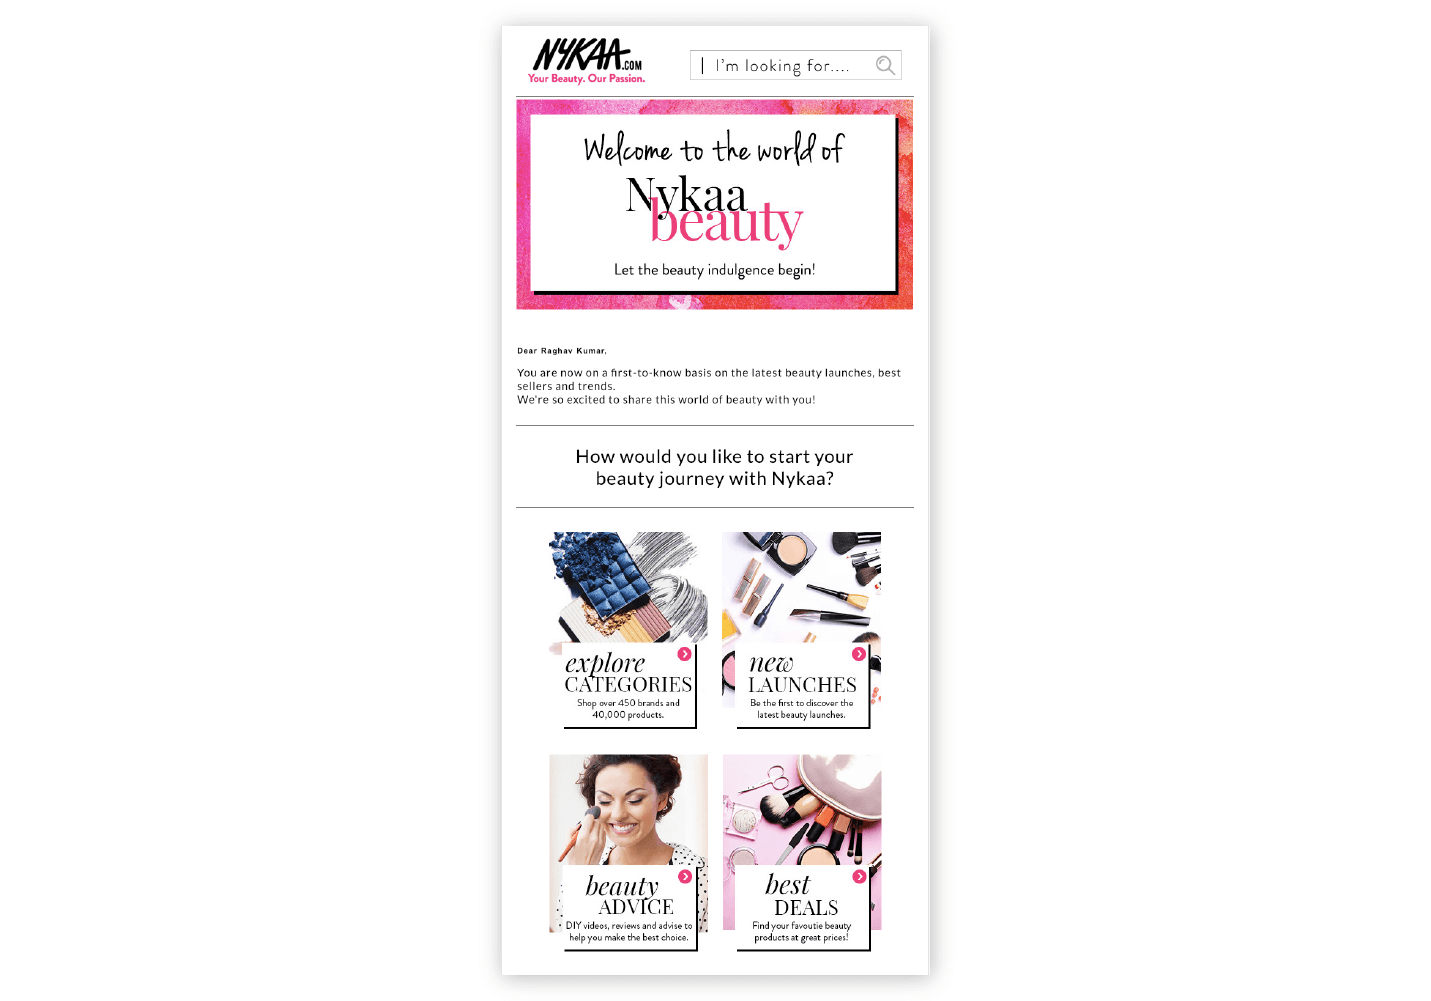 Nykaa Onboarding Email